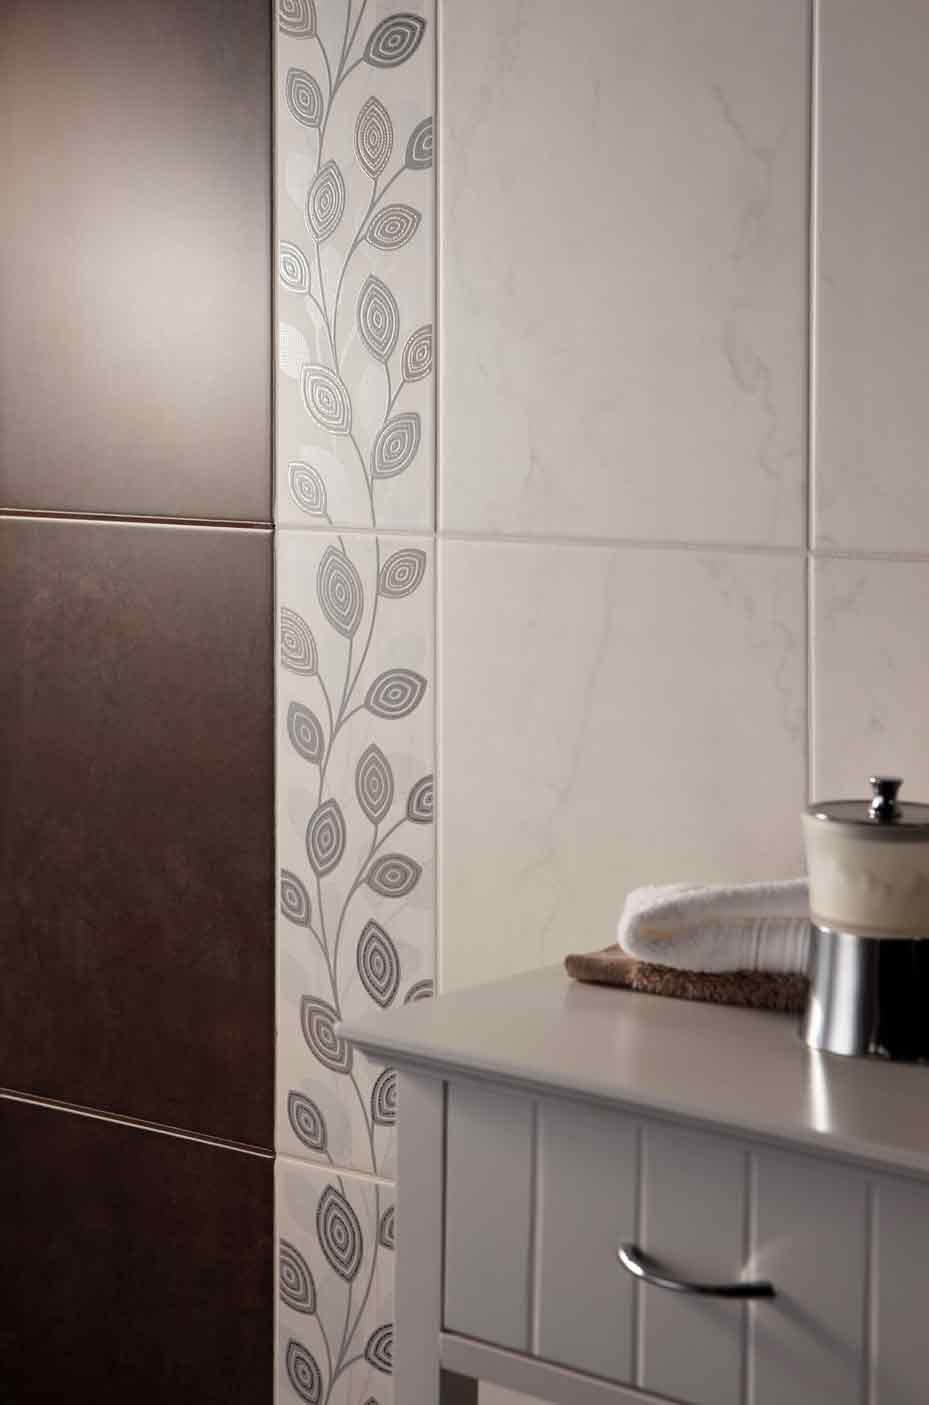 sl is a ceramic tiles a first for ultimatestone we a proud to add this